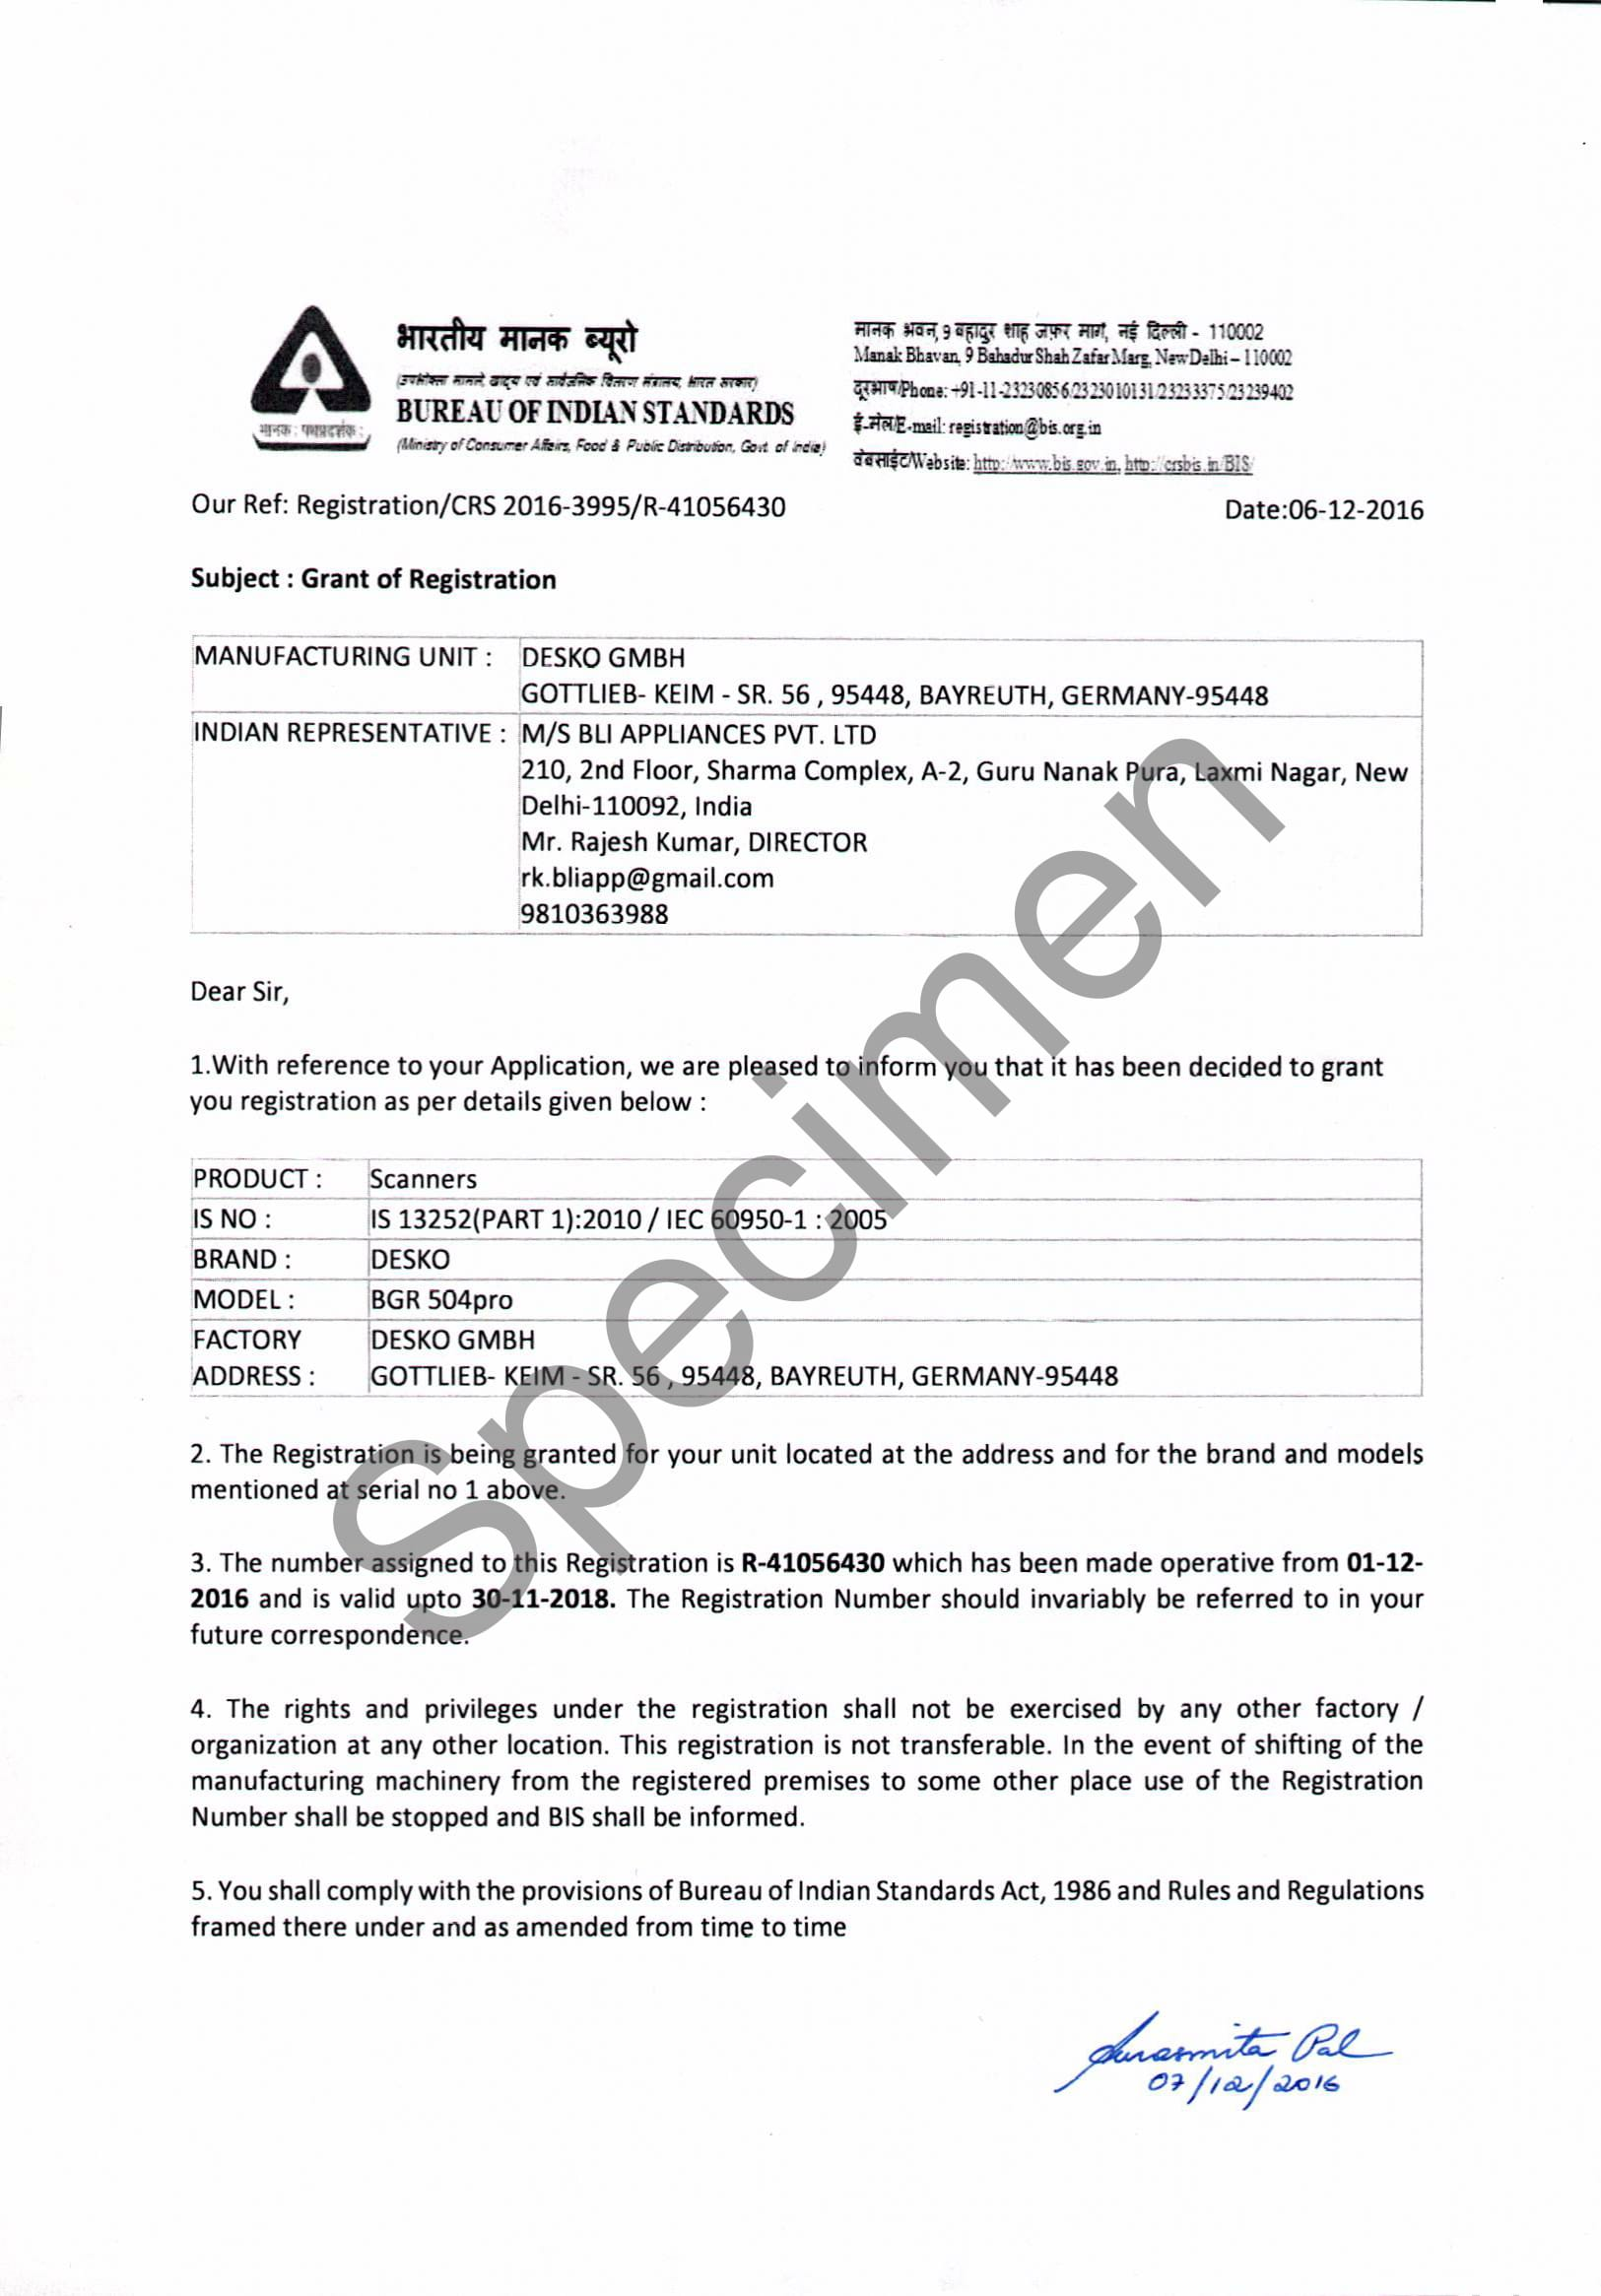 format of bis registration certificate bis certification this is an indicative document only to show the contents mentioned on bis registration certificate this is not for any legal presentation